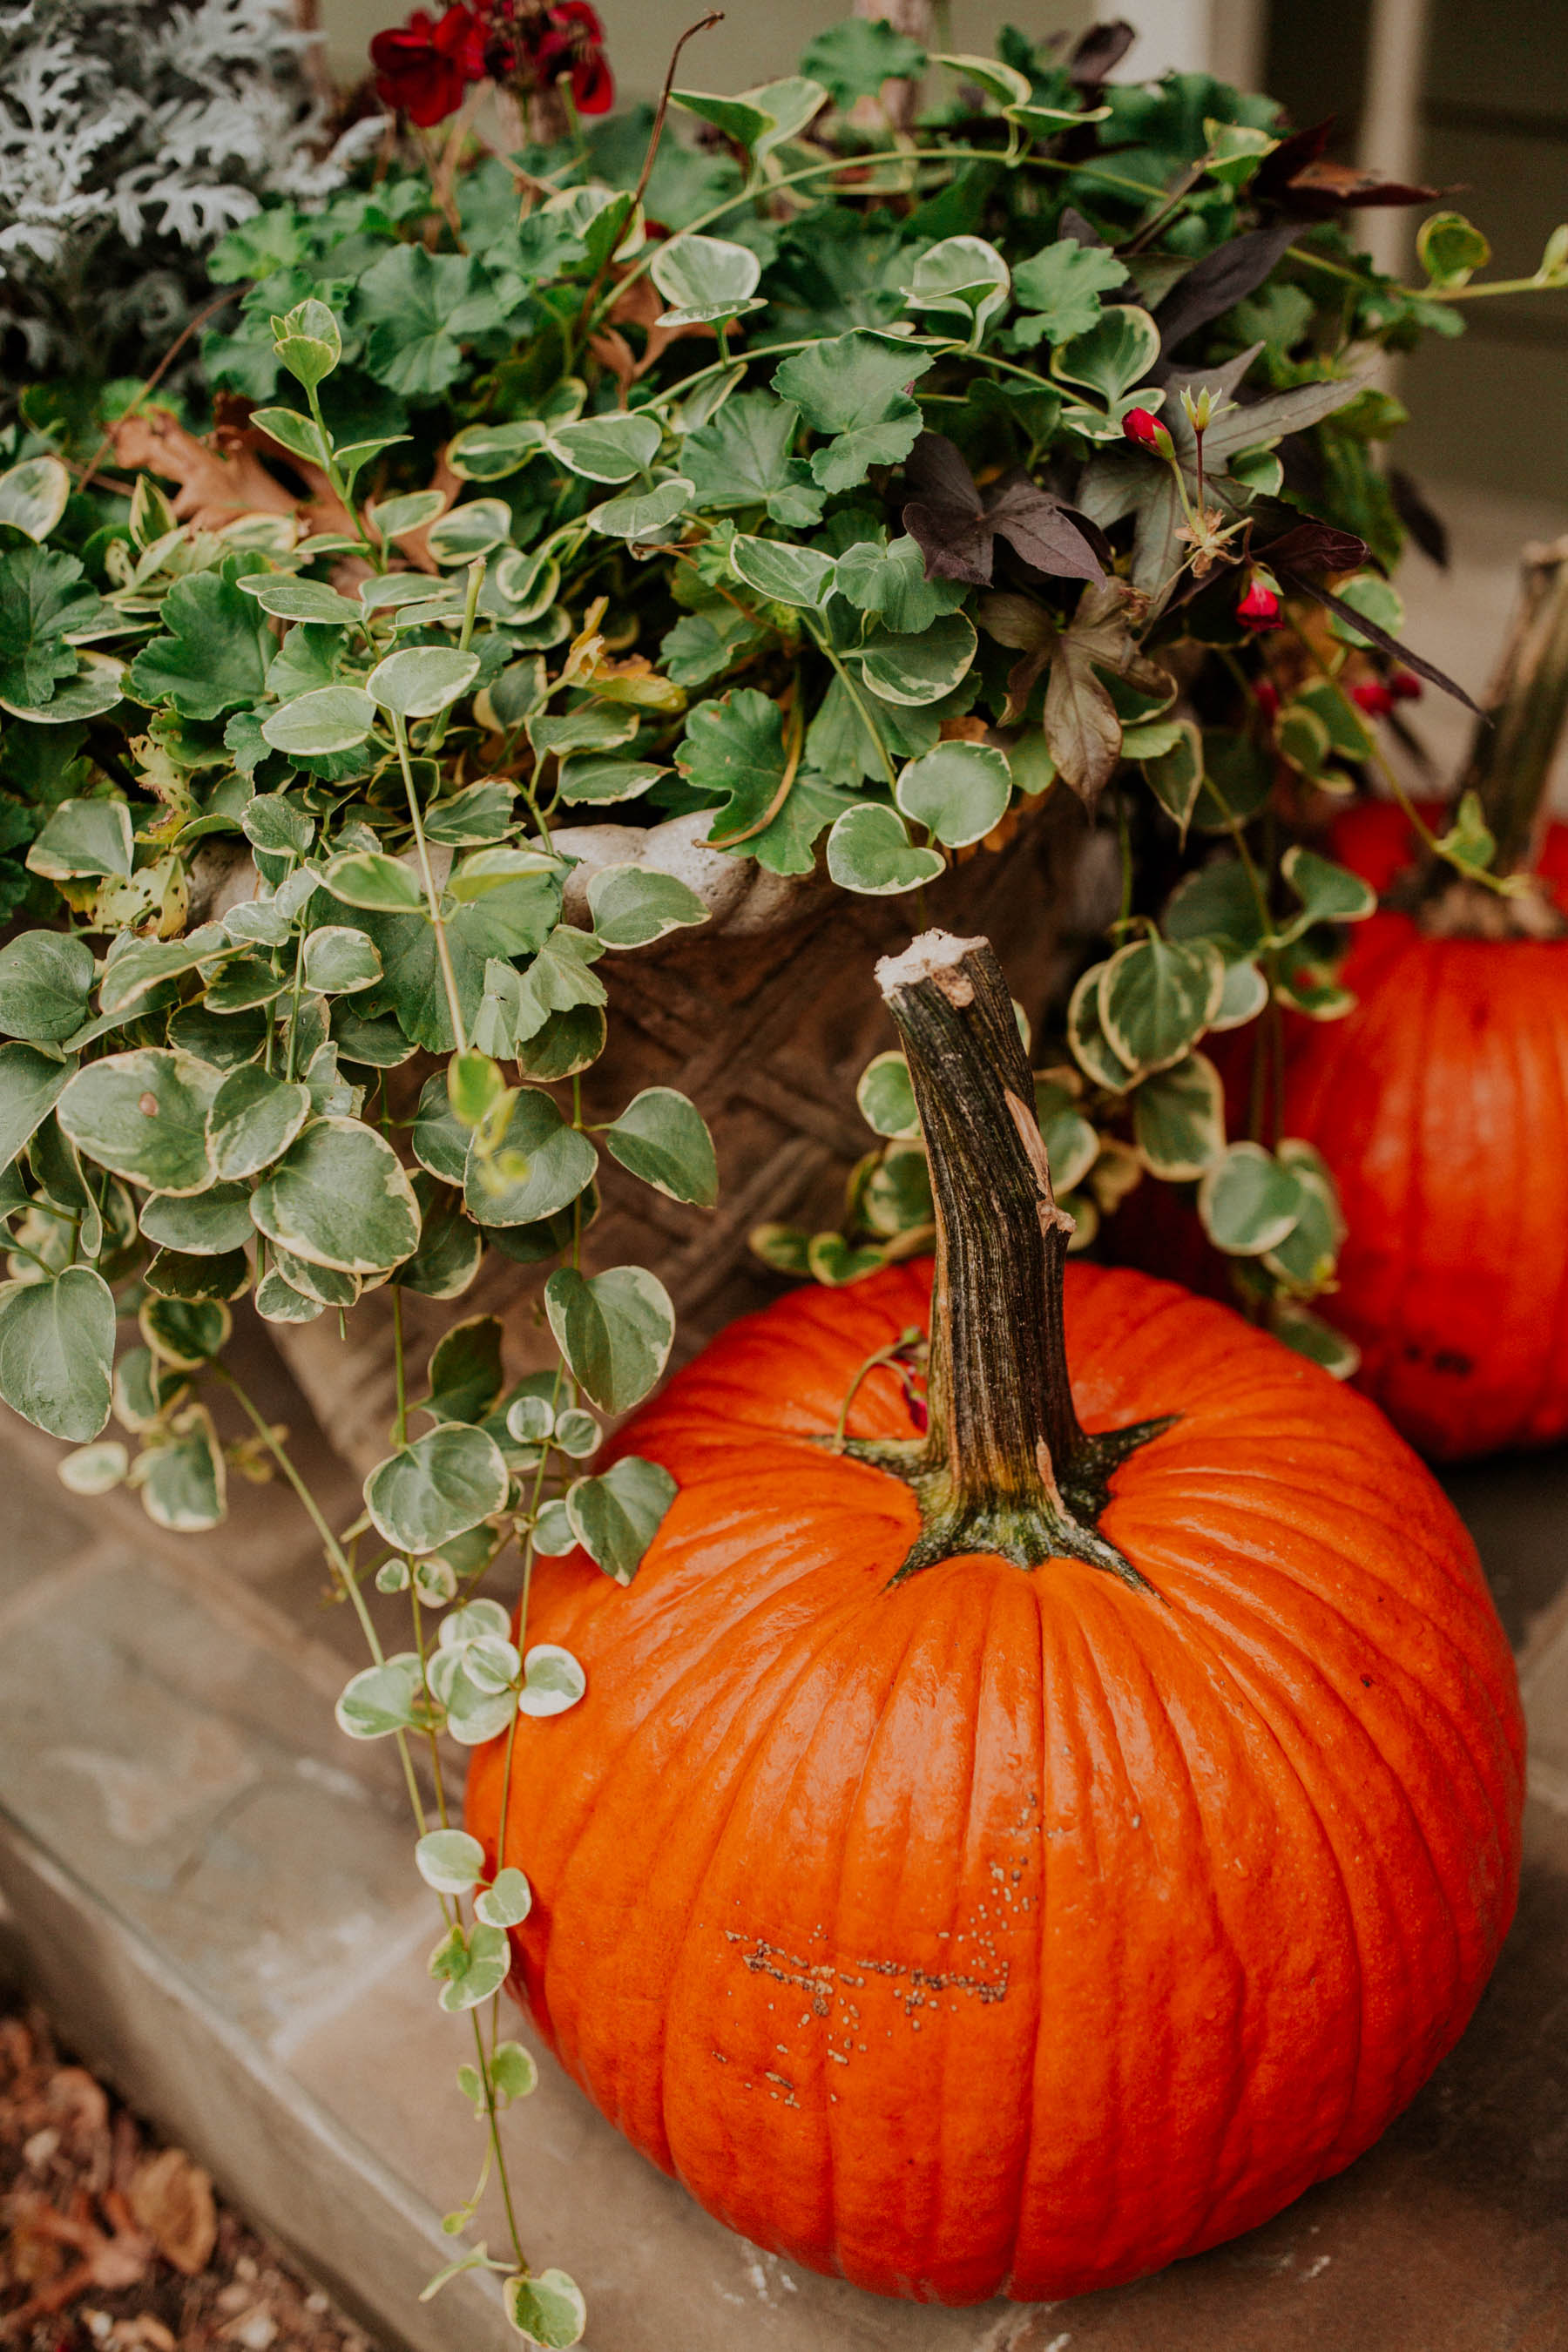 Fall Porch Decor: Pumpkins and Plants